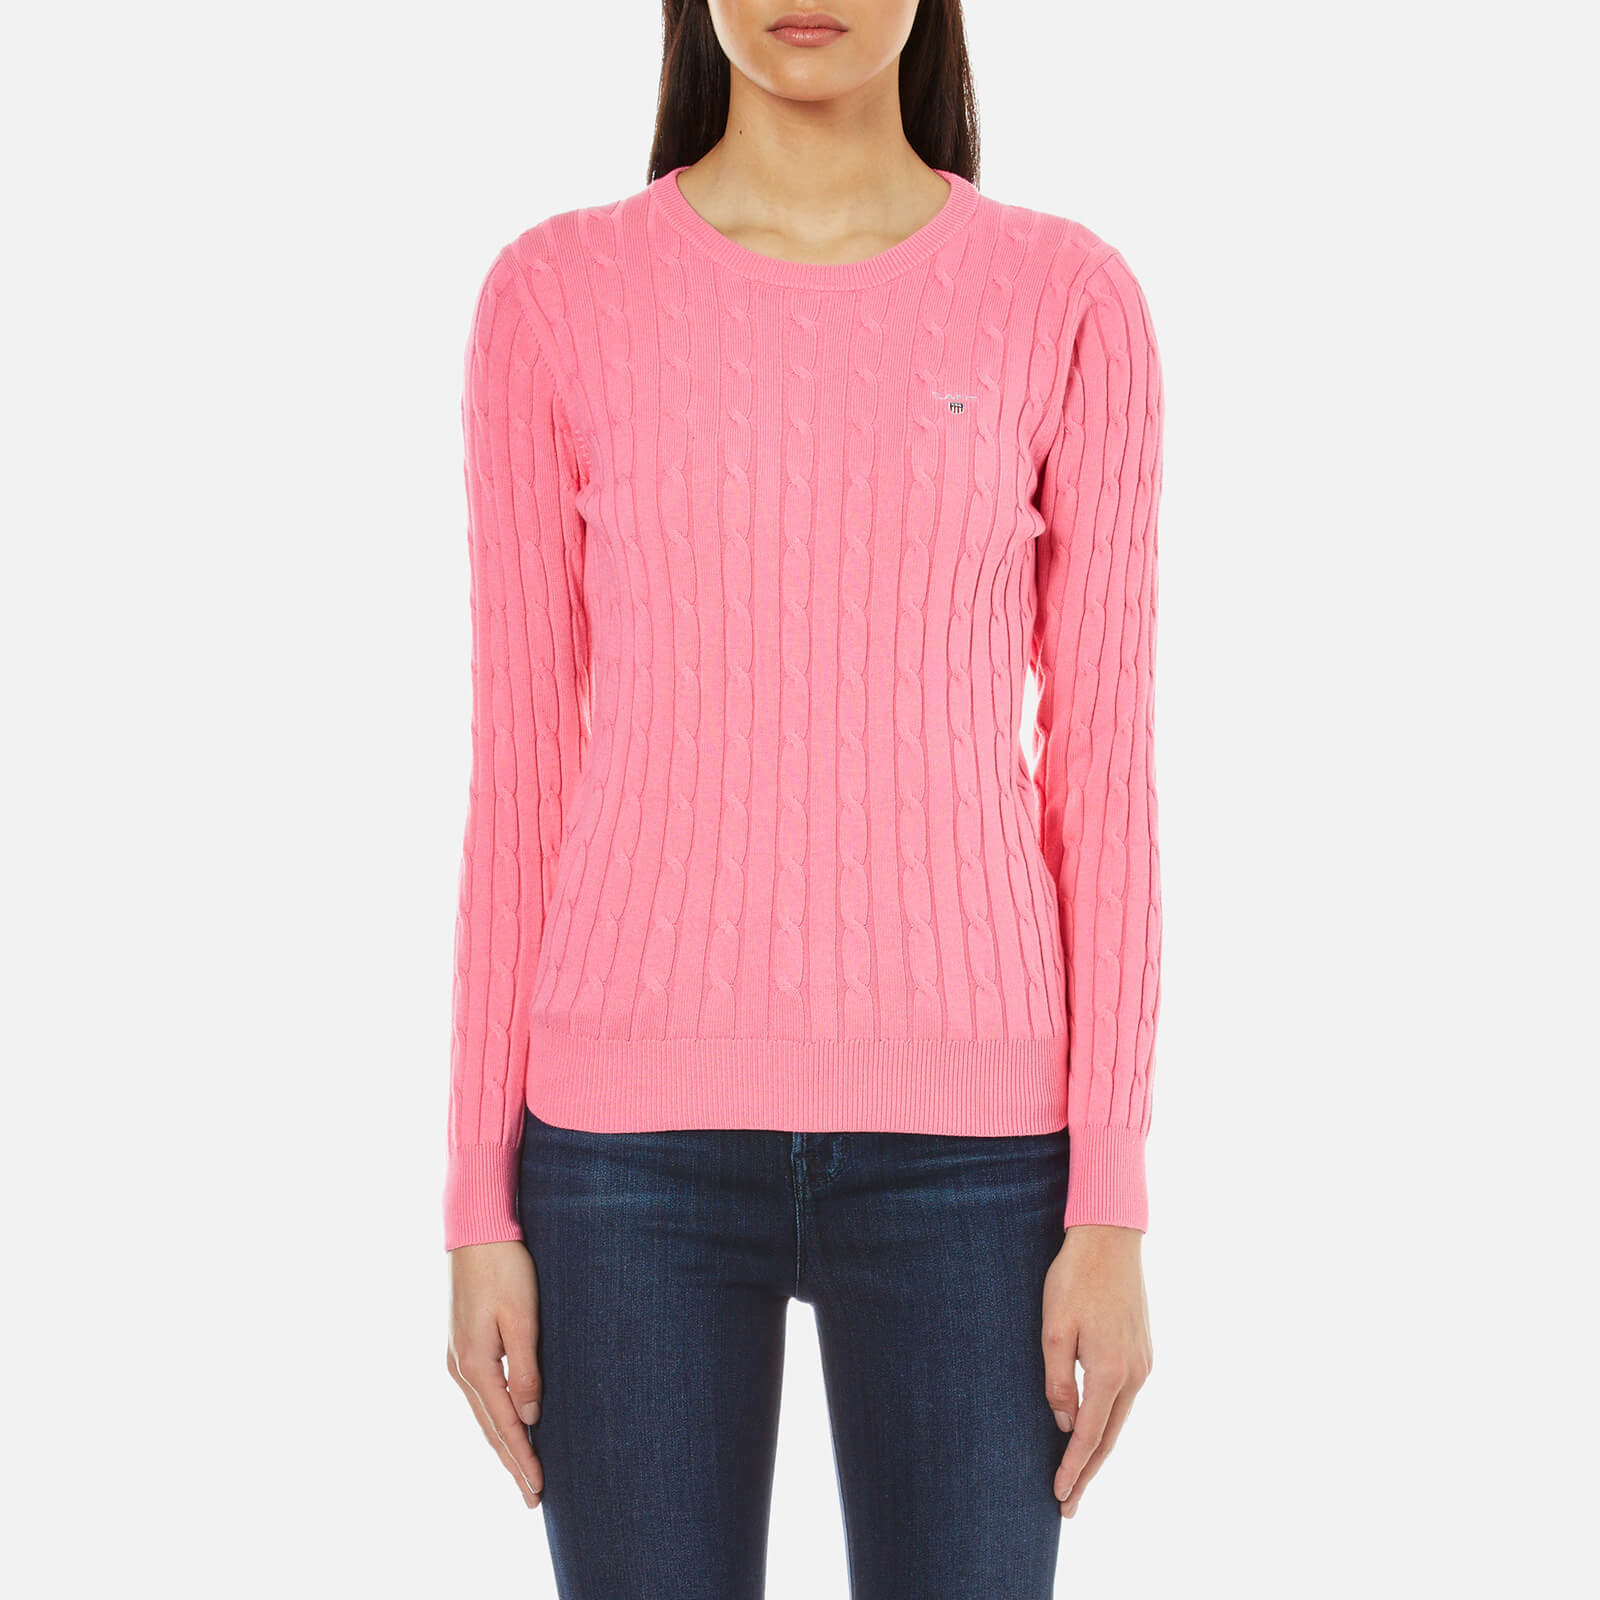 9364a645f4a9d9 GANT Women's Stretch Cotton Cable Crew Jumper - Lipstick Pink Womens  Clothing | TheHut.com